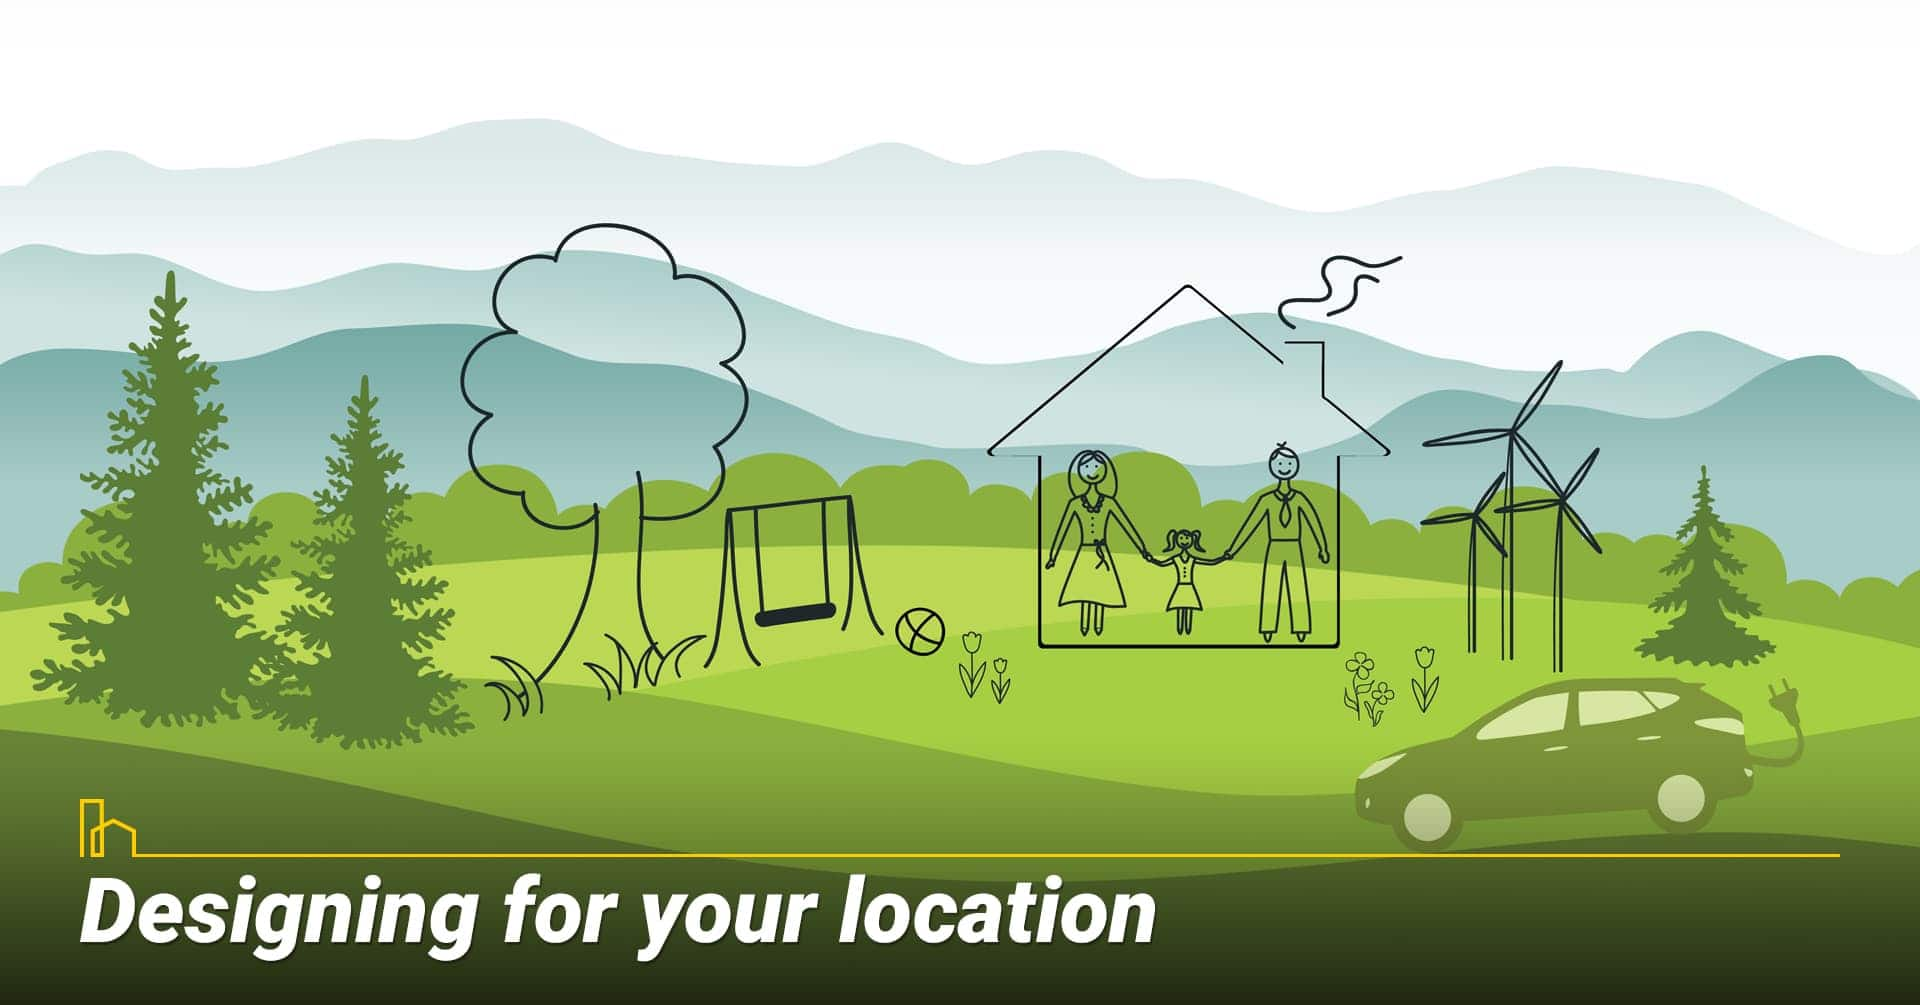 Designing for your location, consider the surrounding areas when design your home